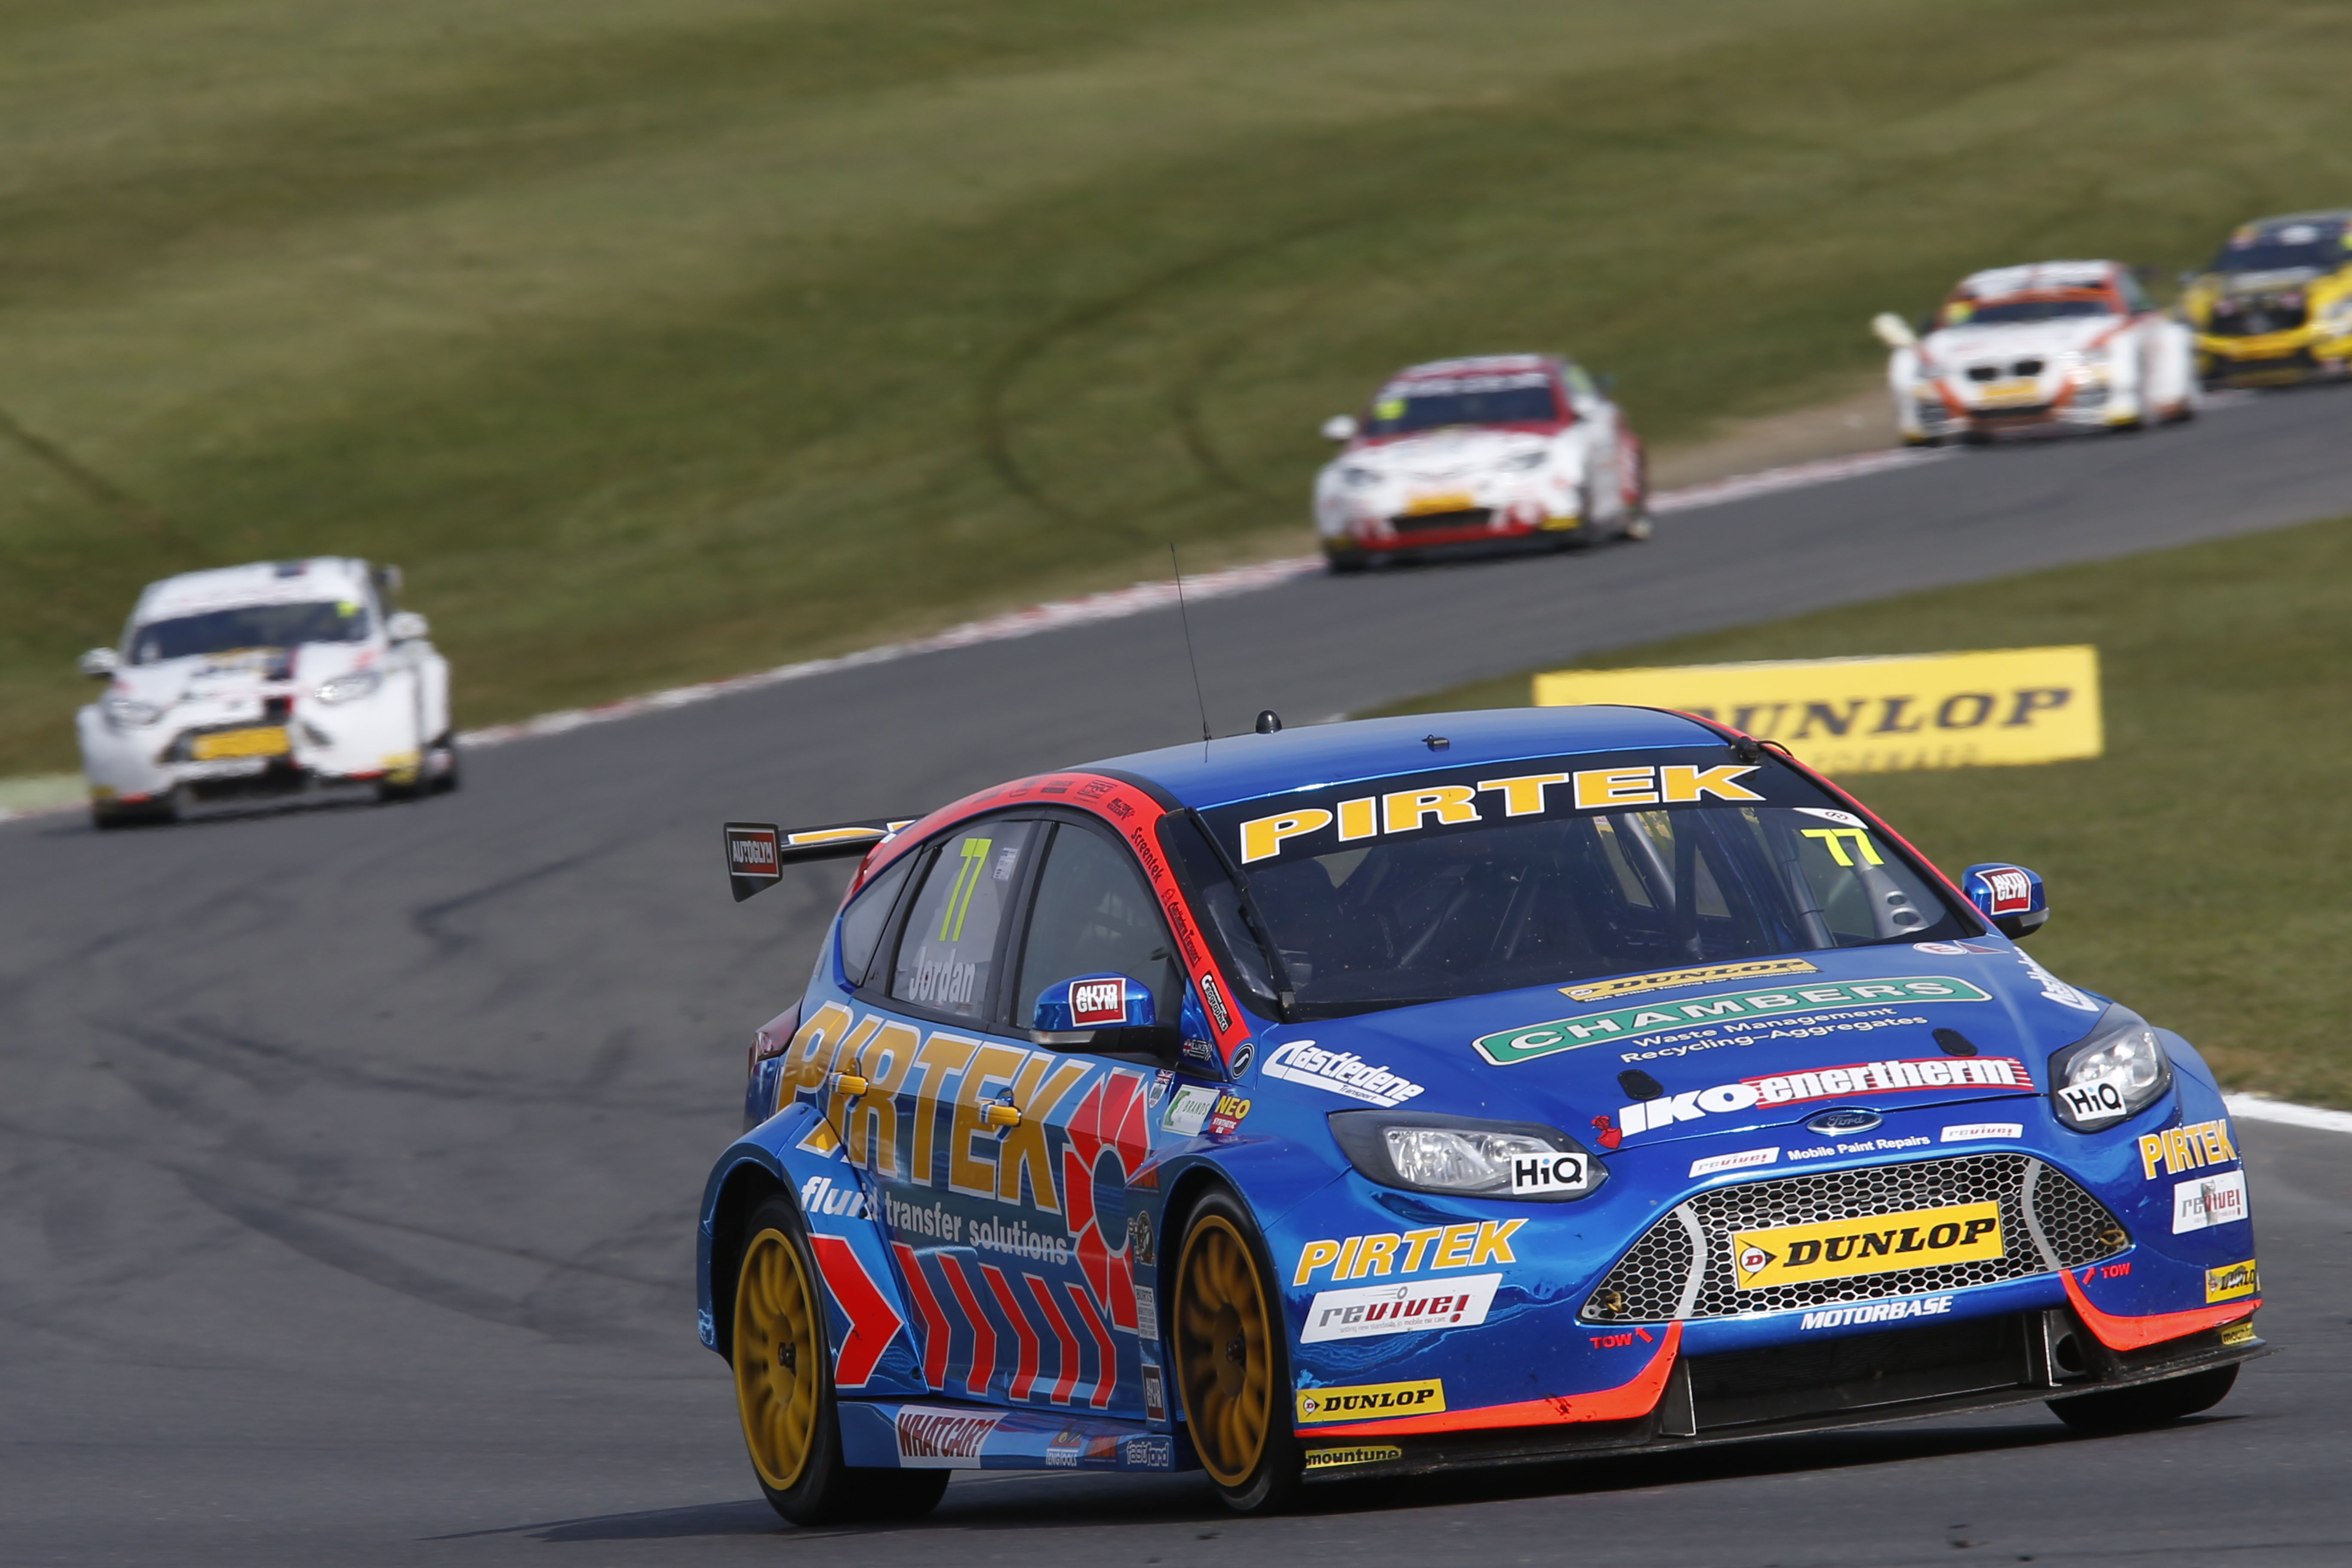 Andrew Jordan at Brands Hatch 2016